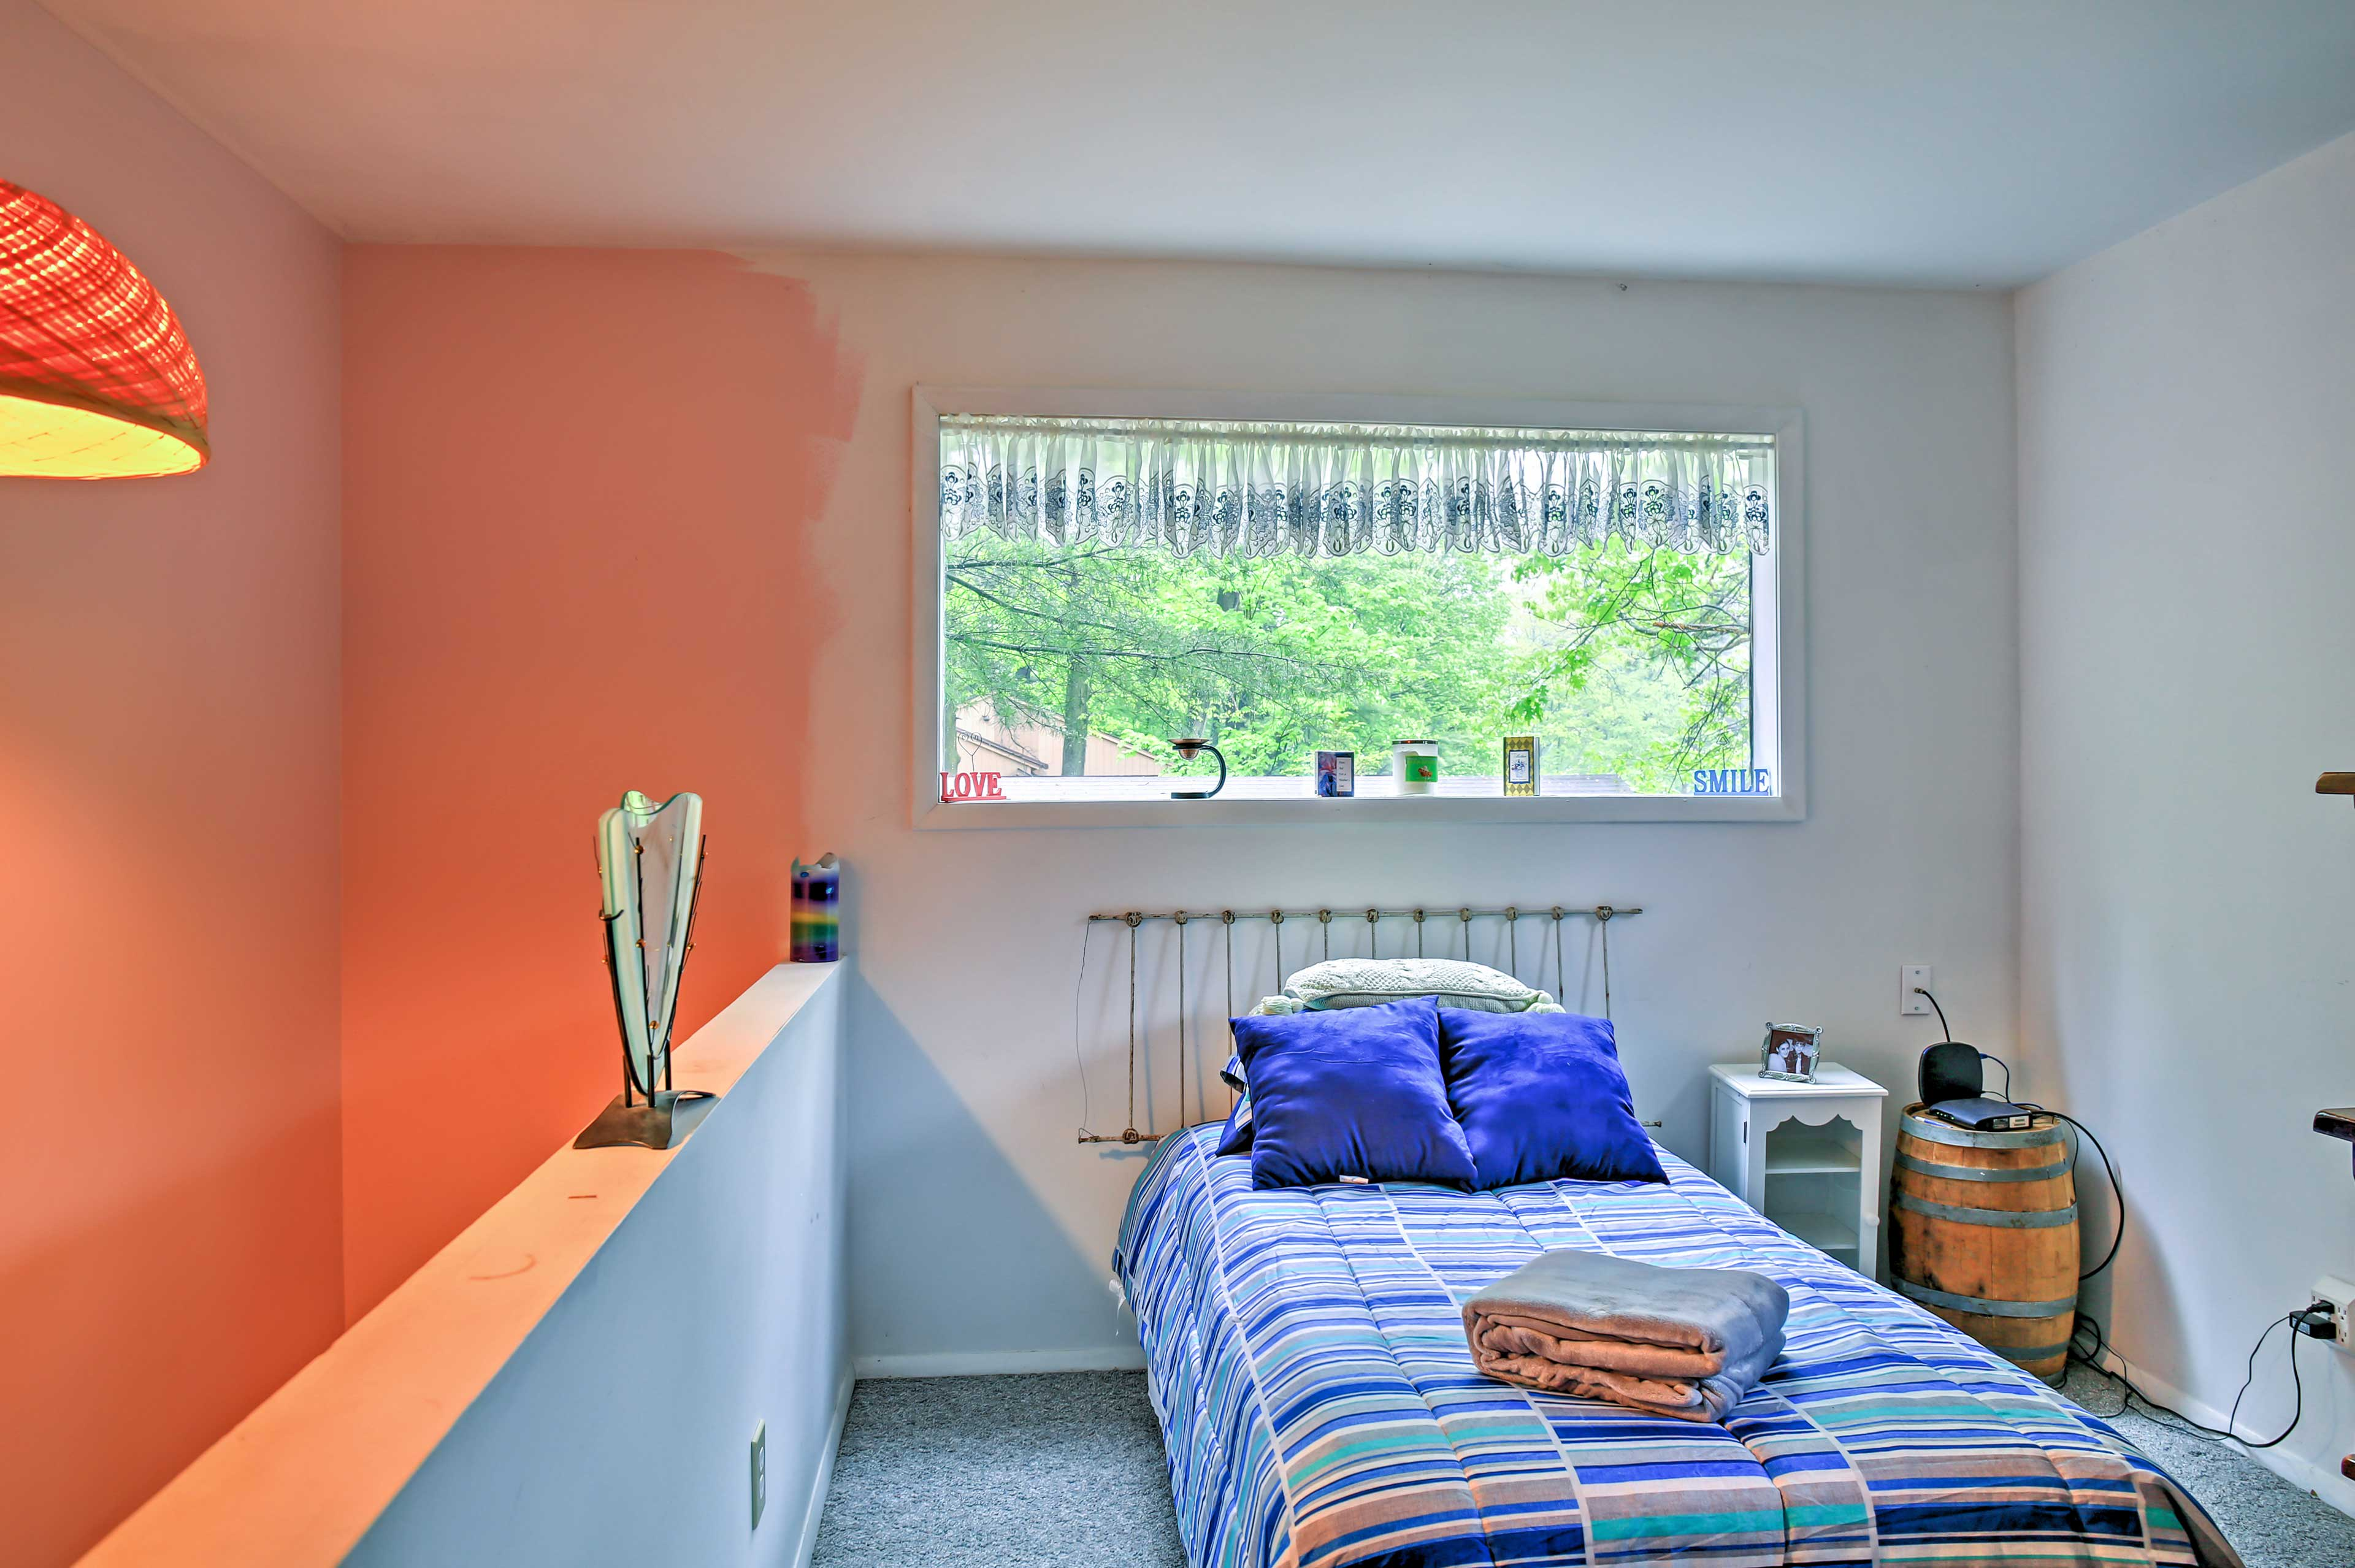 The loft bedroom offers a quiet space, desk and twin bed.